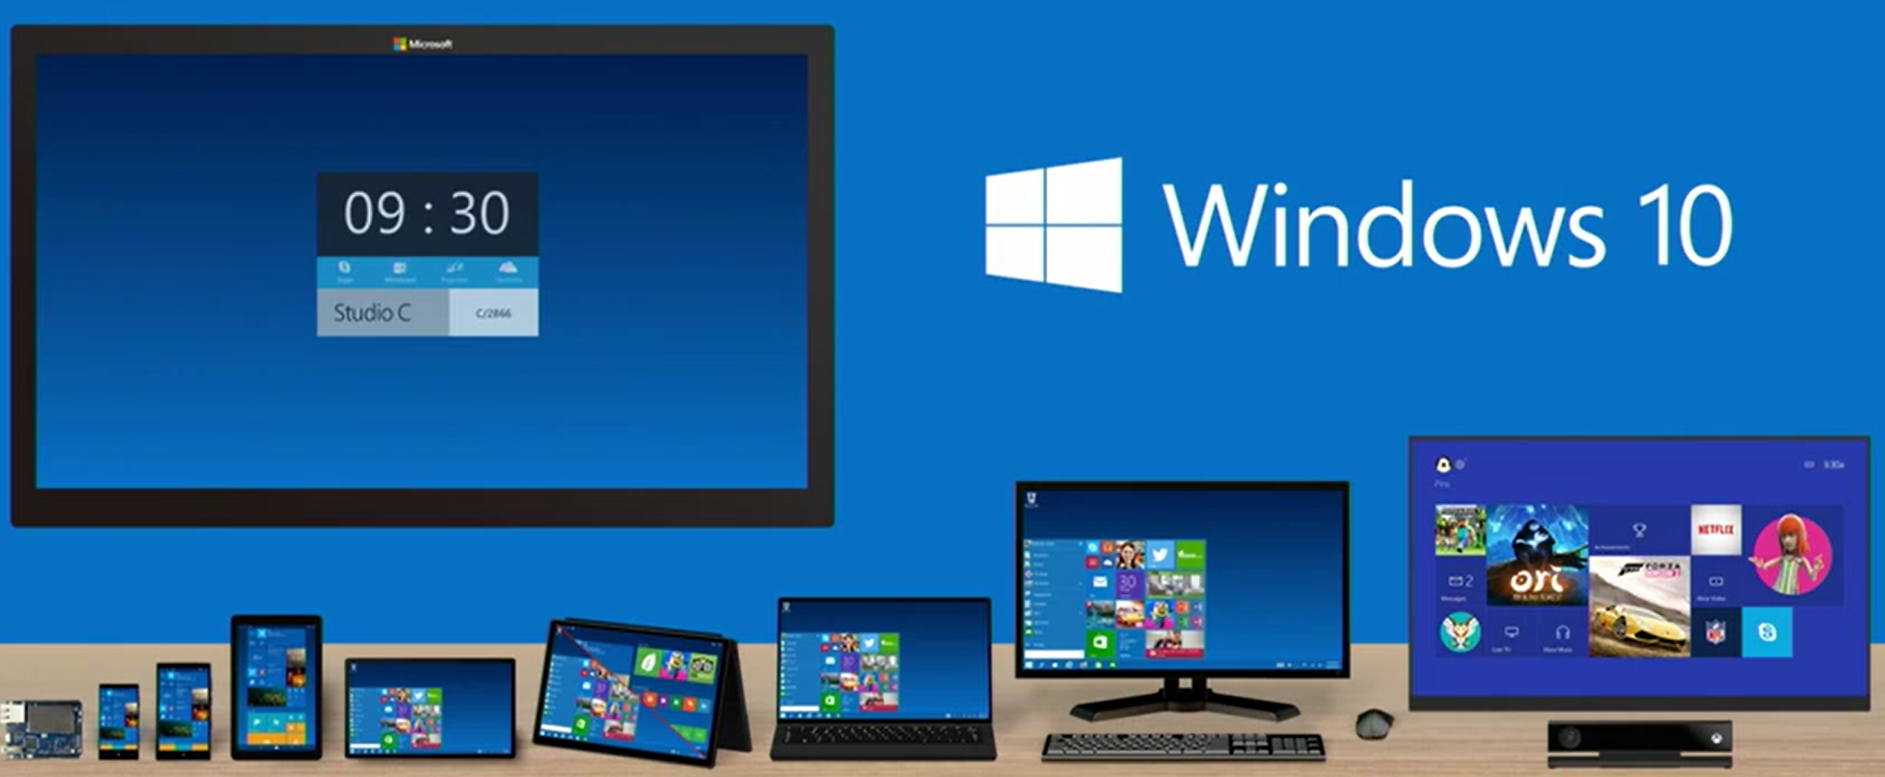 Windows 10 promises to converge all Microsoft devices onto one platform.